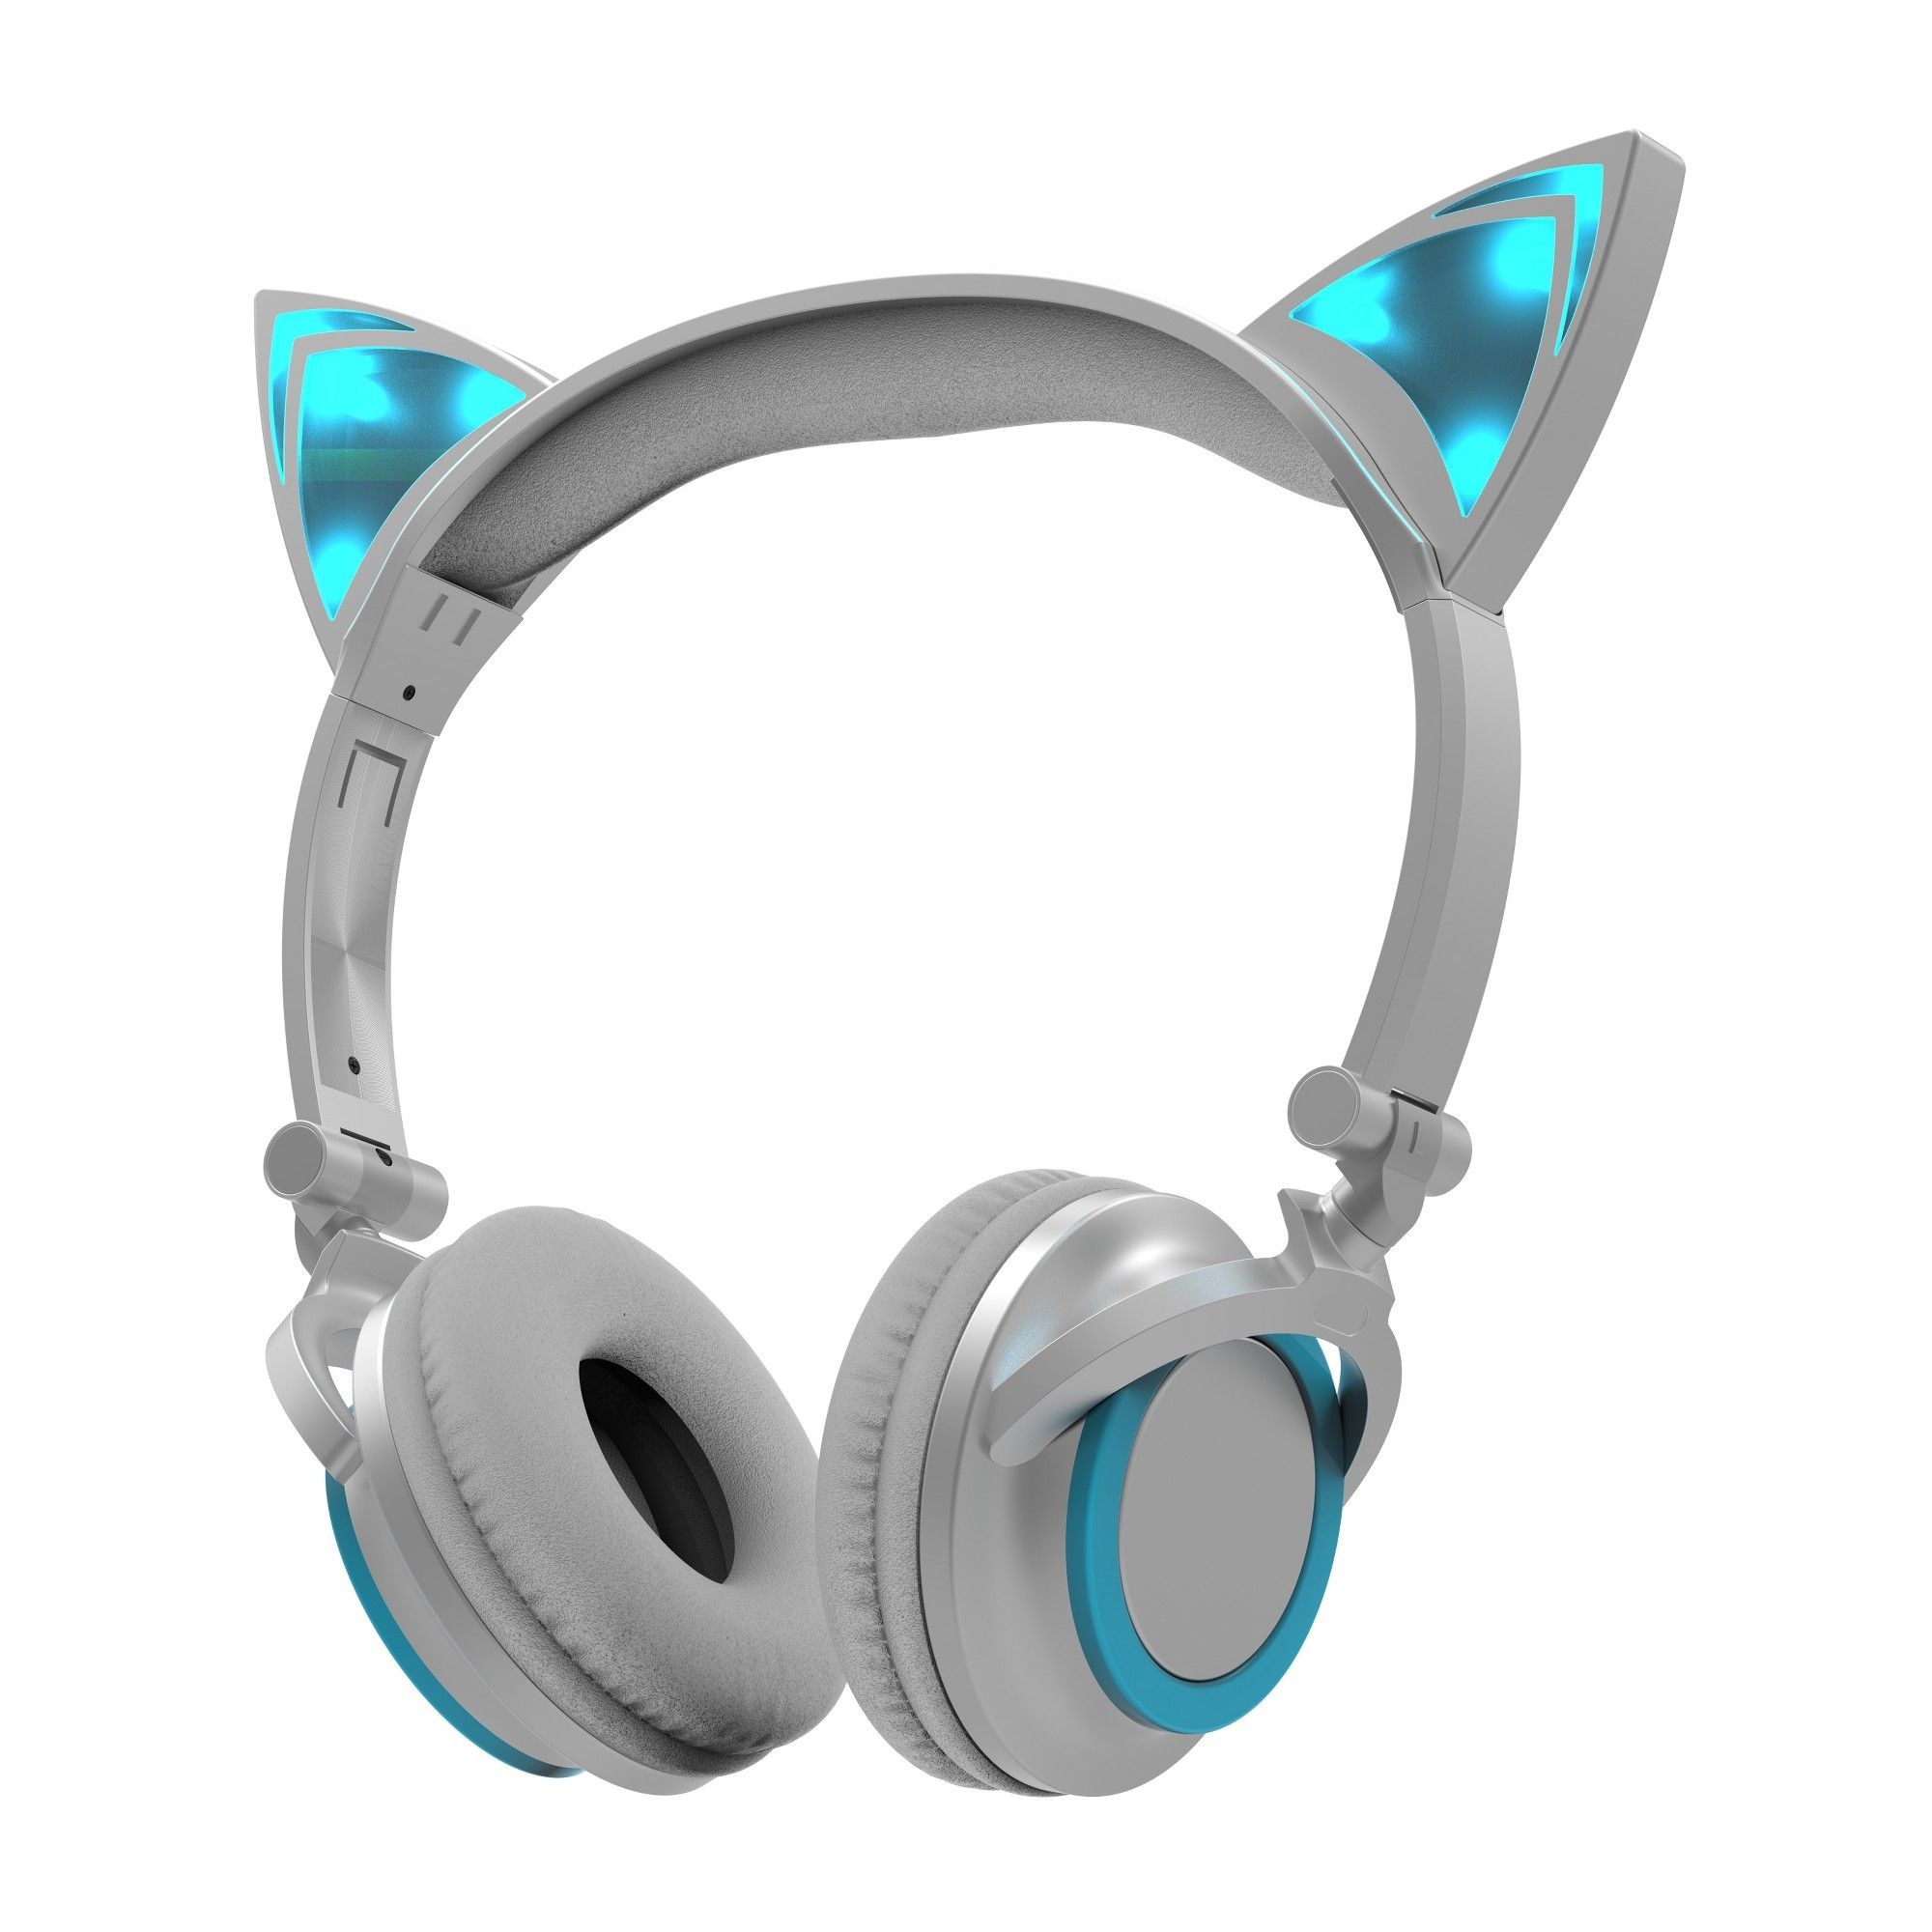 Sharper Image Led Cat Ear Headphones with Fold - Blue